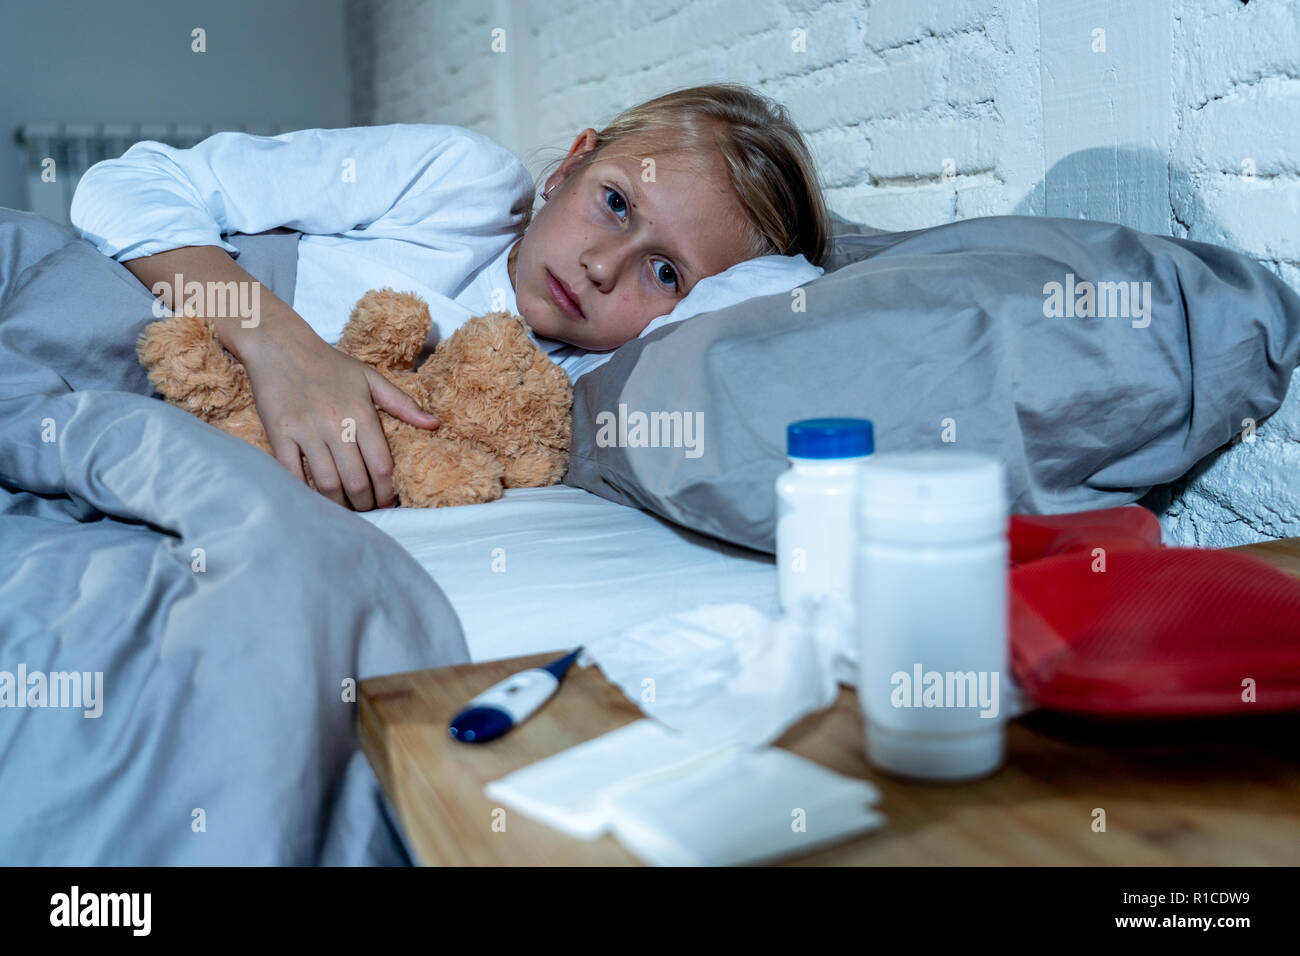 Sweet sick cute girl feeling sick lying in bed with medicines thermometer hot water bag suffering from Cold and Winter Flu Virus Sneezing Running Nose Stock Photo